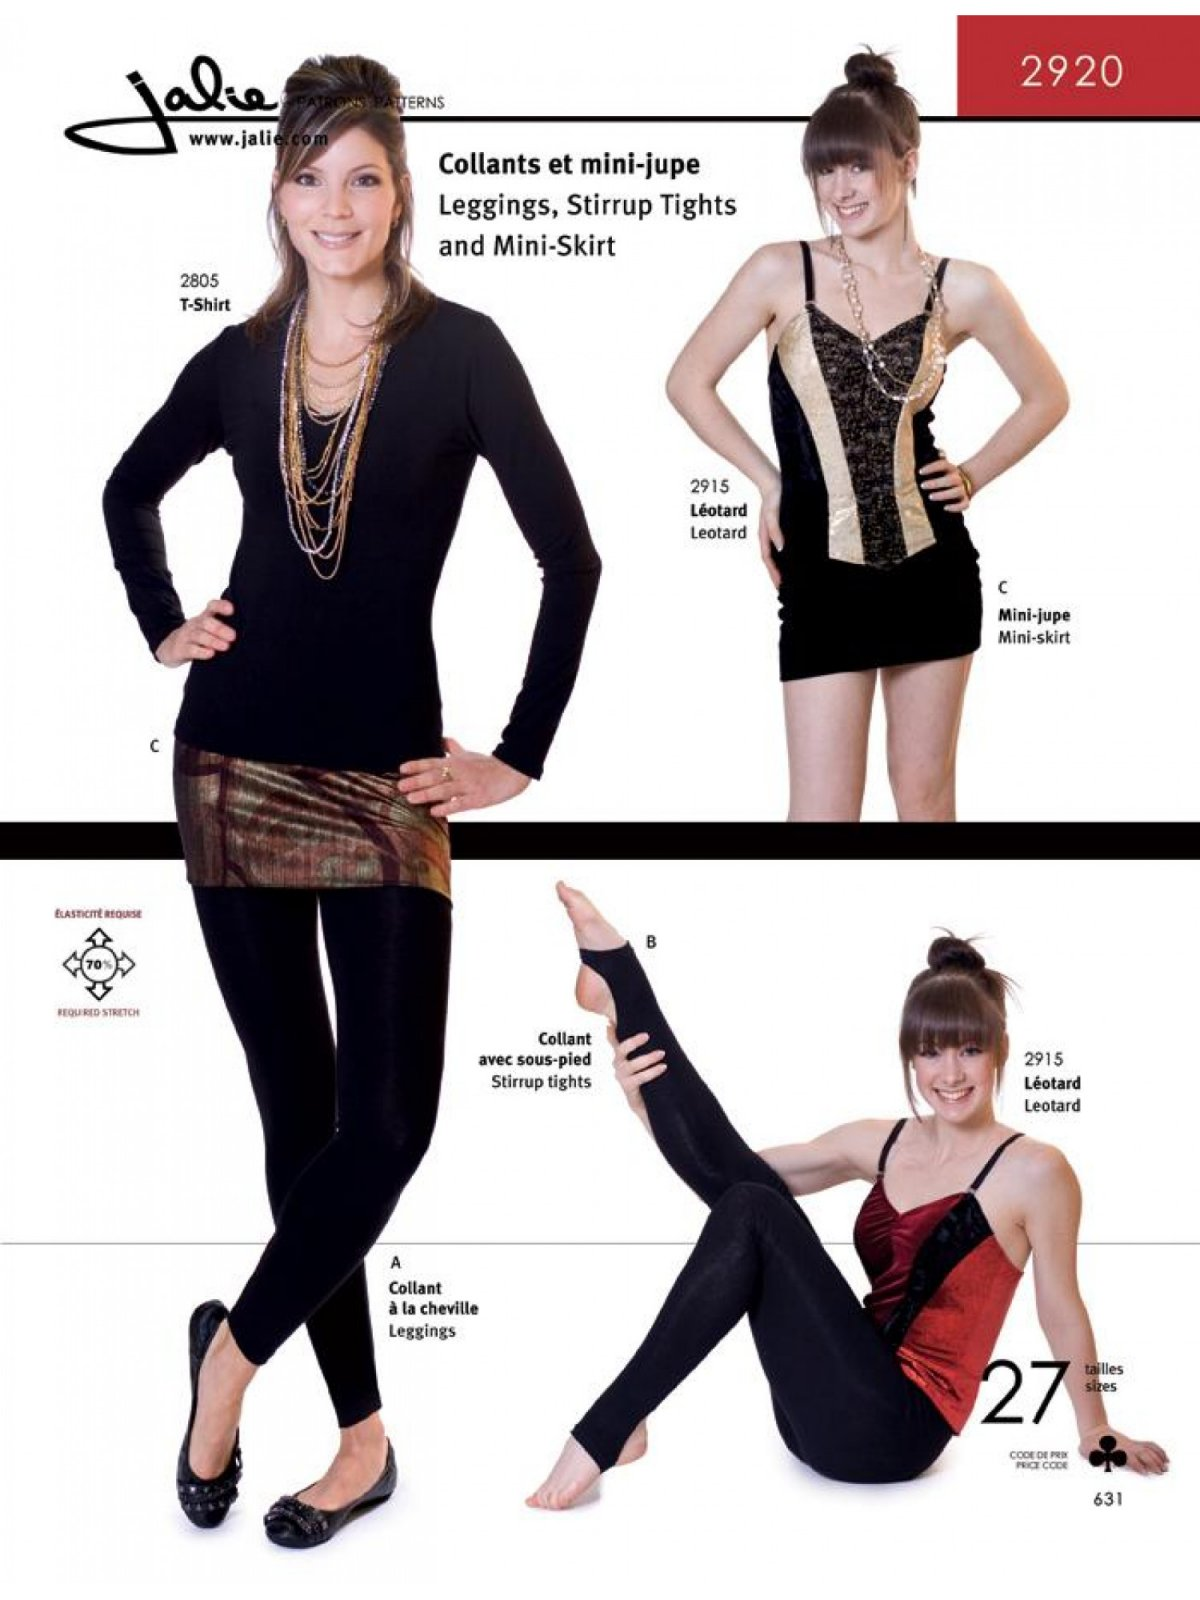 Jalie Patterns Leggings, Stirrup Tights and Mini-Skirt #2920